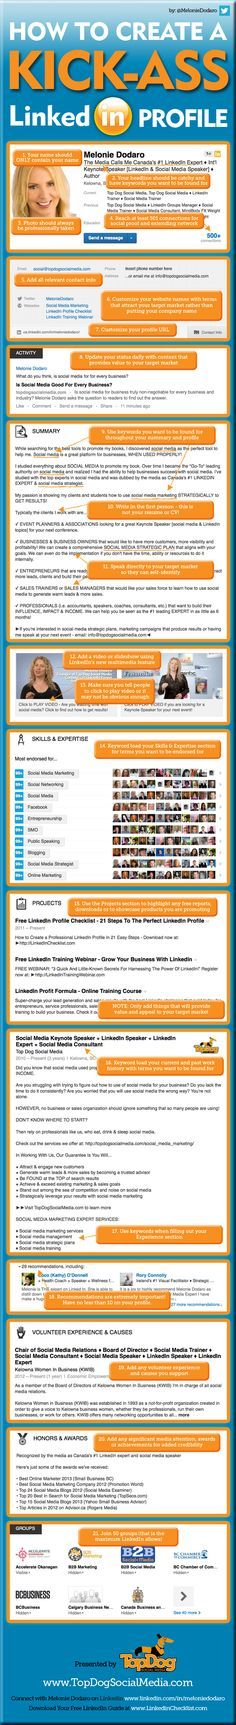 How to Create the Perfect #LinkedIn Profile [#Infographic]